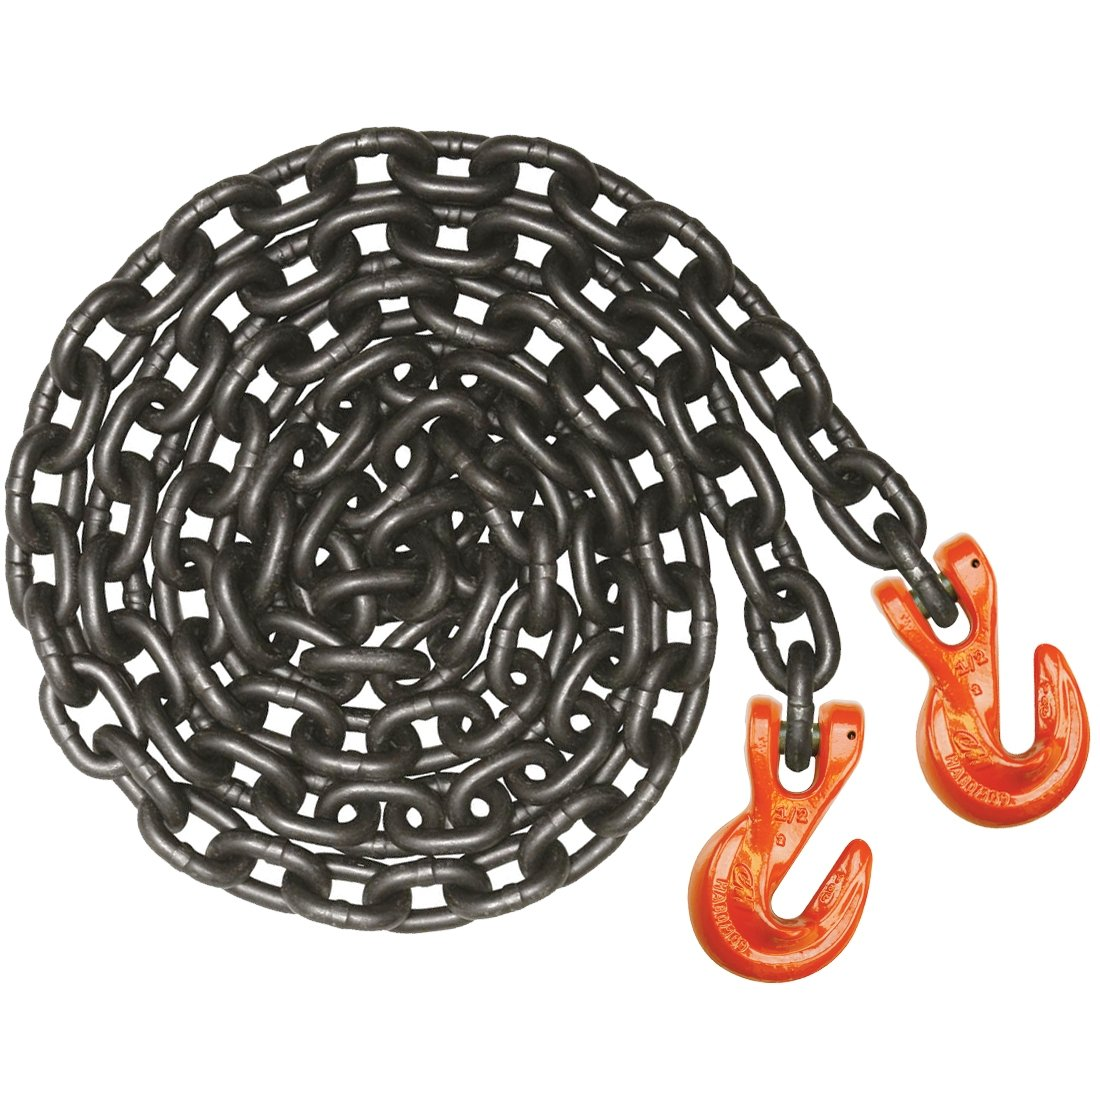 VULCAN PROSeries Grade 100 Super Duty Safety Chain With Clevis Grab Hooks - 15,000 lbs. Safe Working Load (1/2'' x 10')